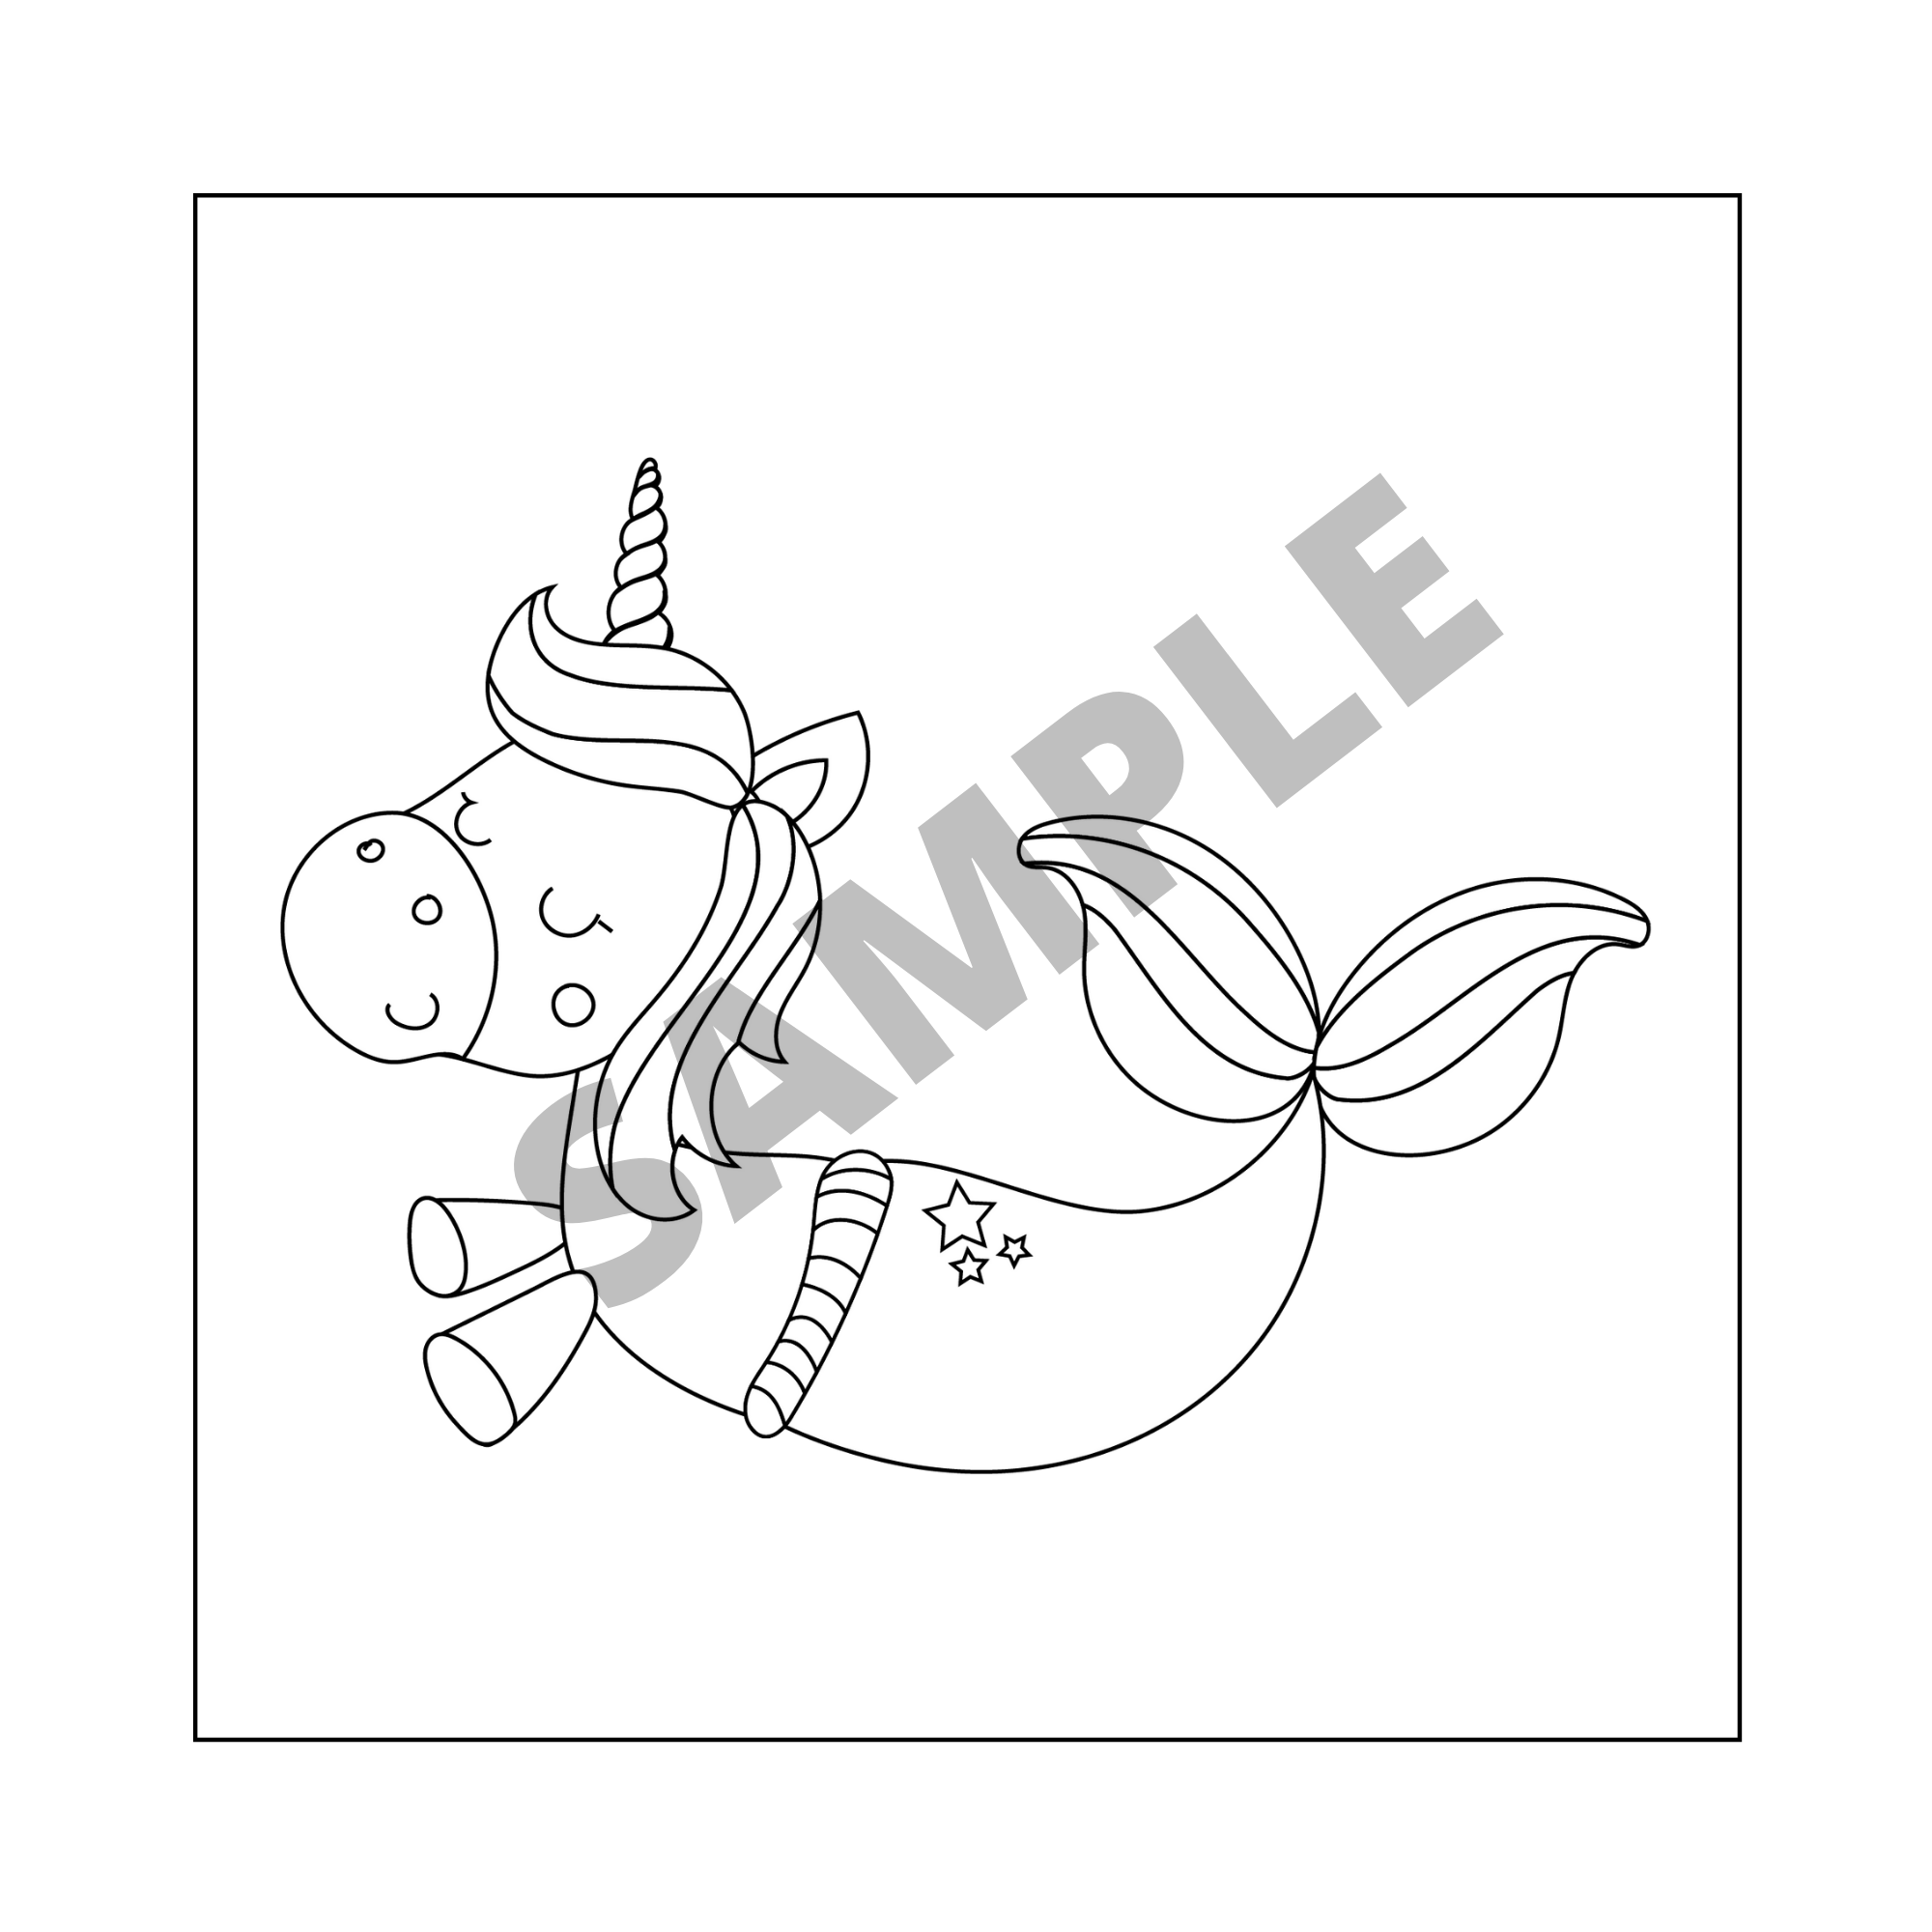 Sea Coloring Pages For Kids Unicorns Mermaids And Other Etsy Unicorn Coloring Pages Coloring Pages Animal Coloring Pages